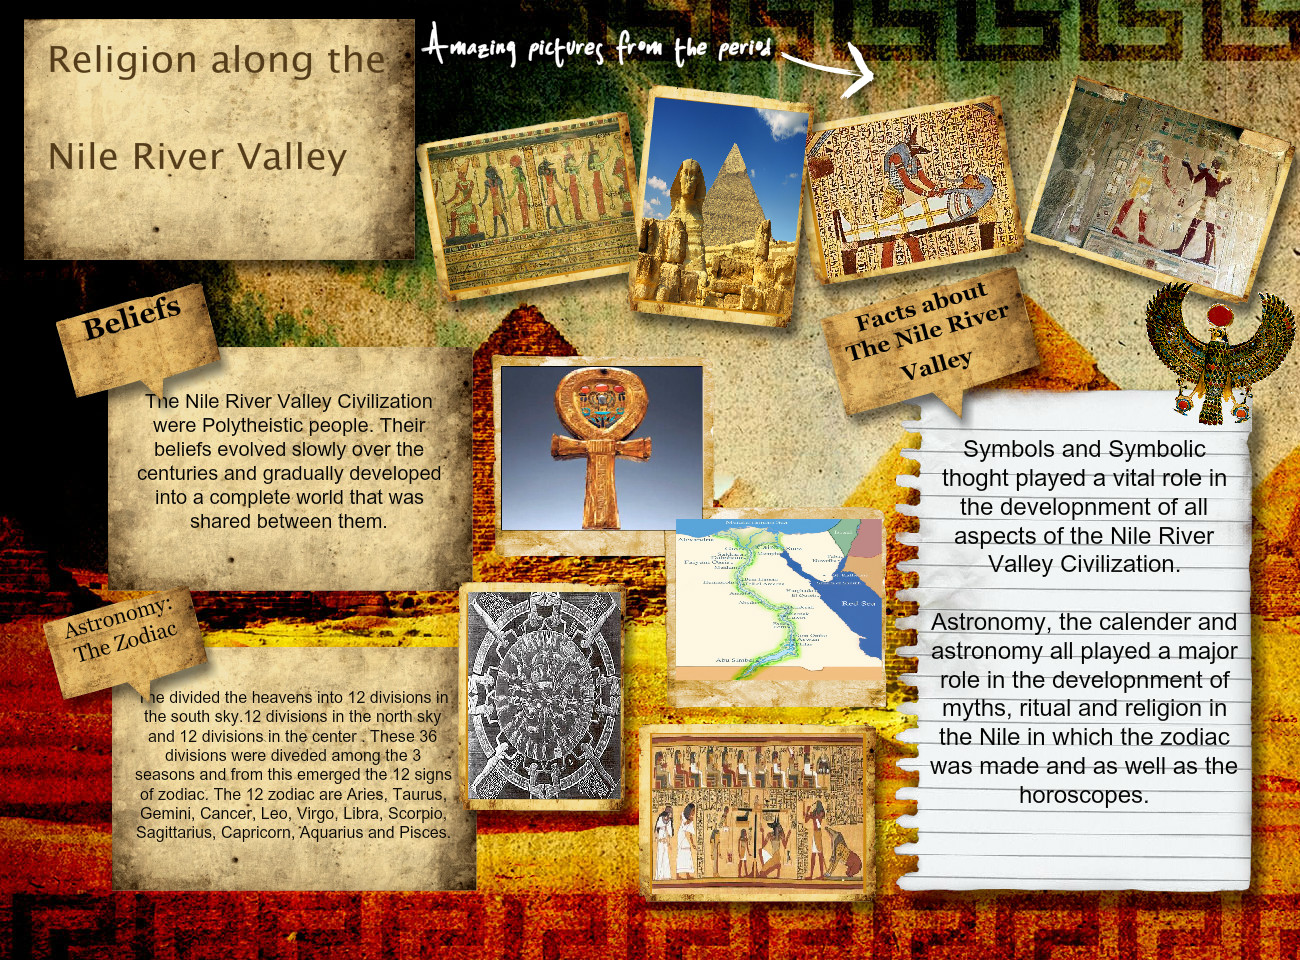 Religion along the Nile River Valley